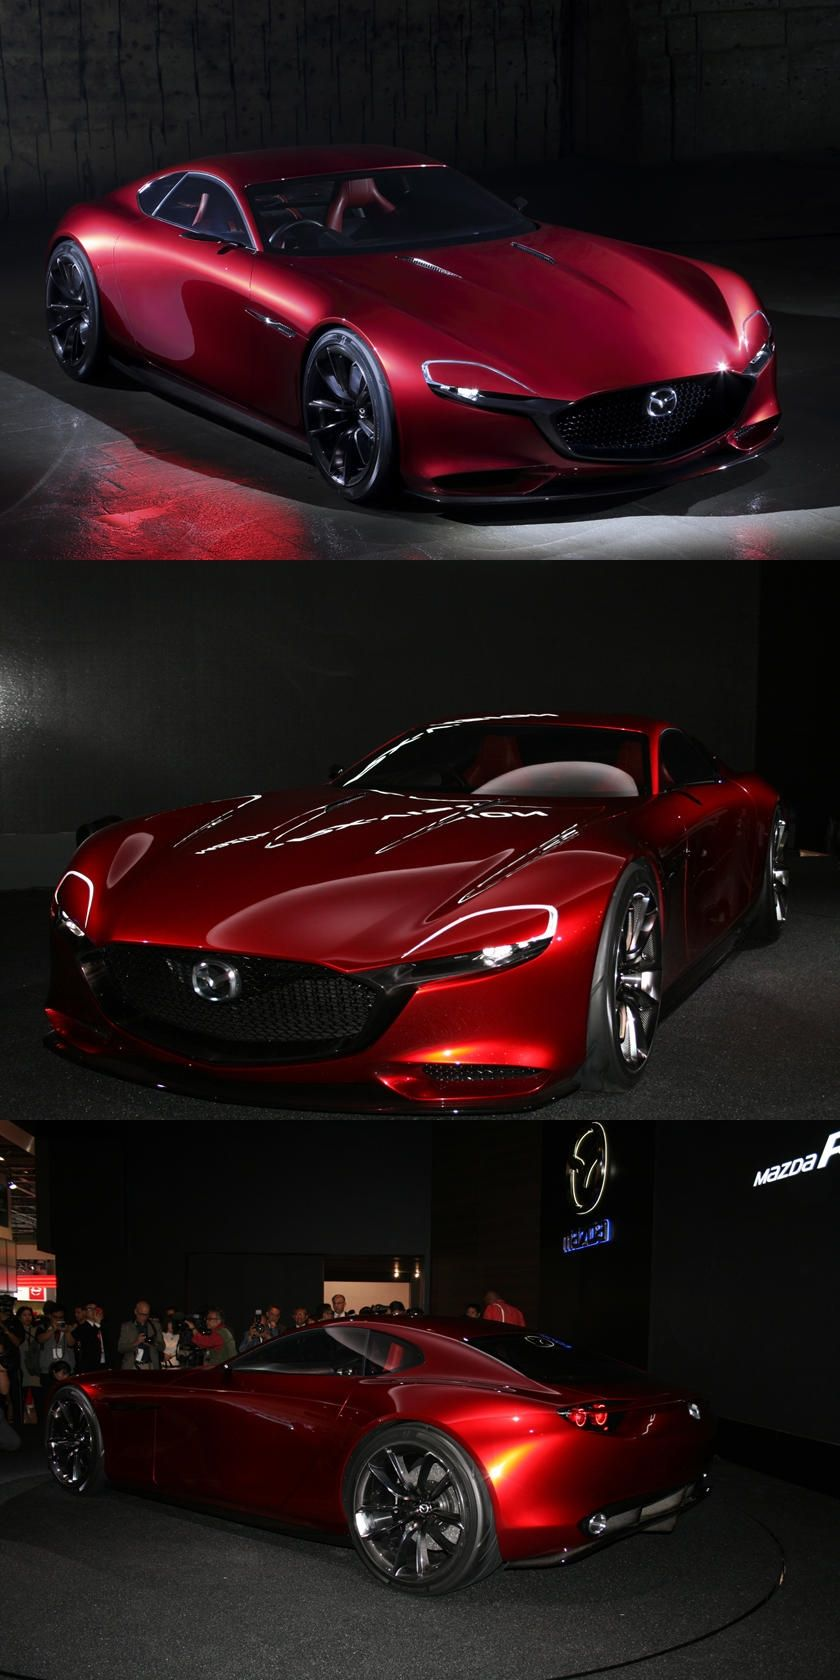 New Mazda Rx 9 Could Be An Awd Super Hybrid A New Patent Filing From Mazda Suggests Awd A Three Motor Hybrid Powertrain And A Gigantic In 2020 Mazda Sports Coupe Awd